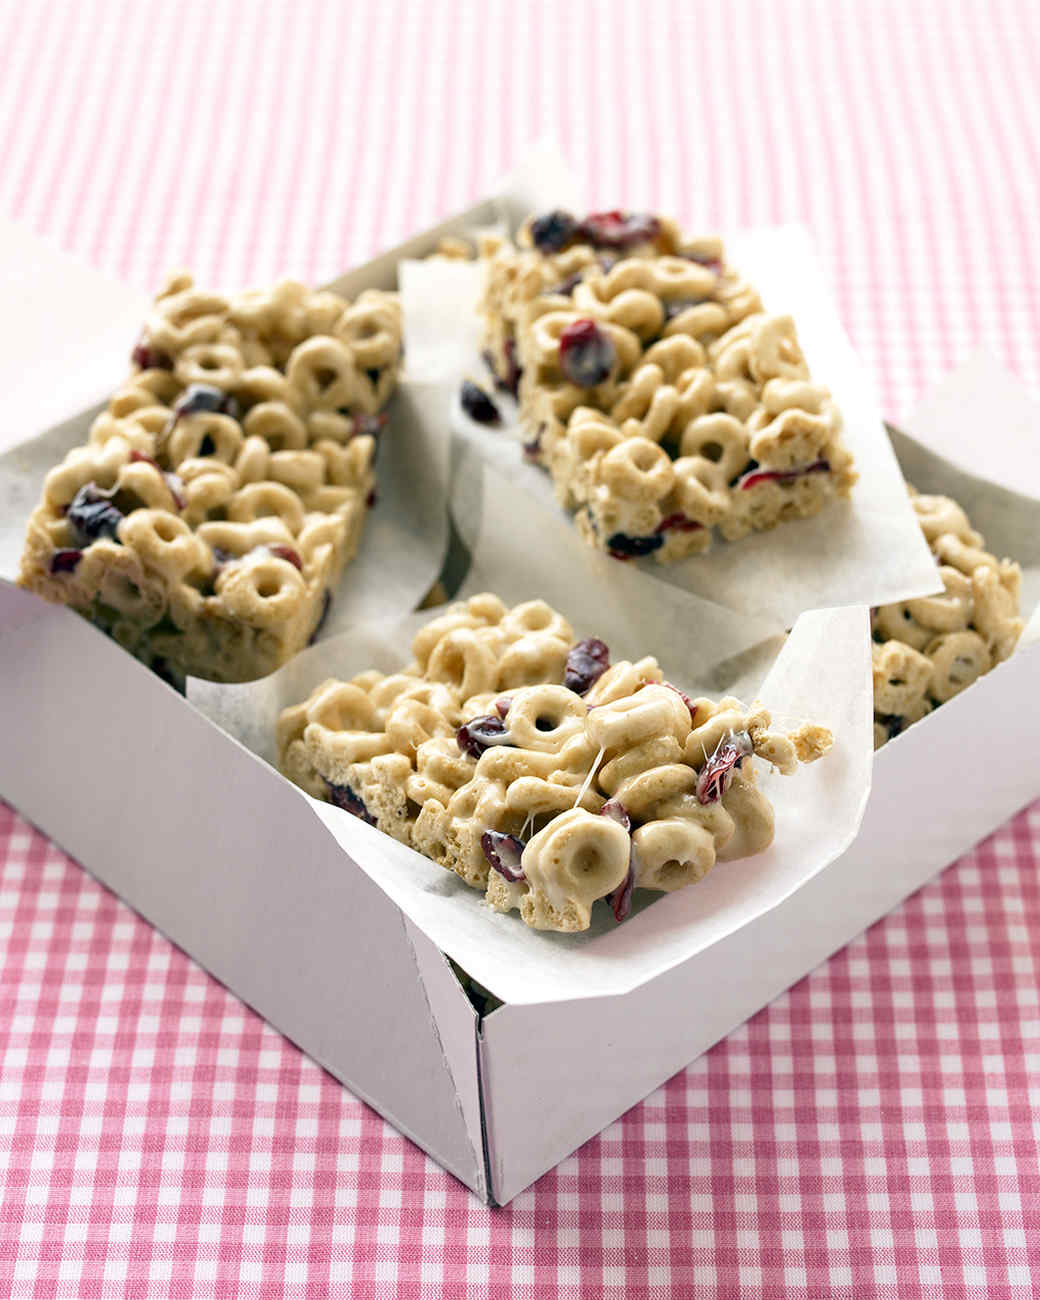 Snack Attack! 14 Healthy Snacks Your Kids Will Love